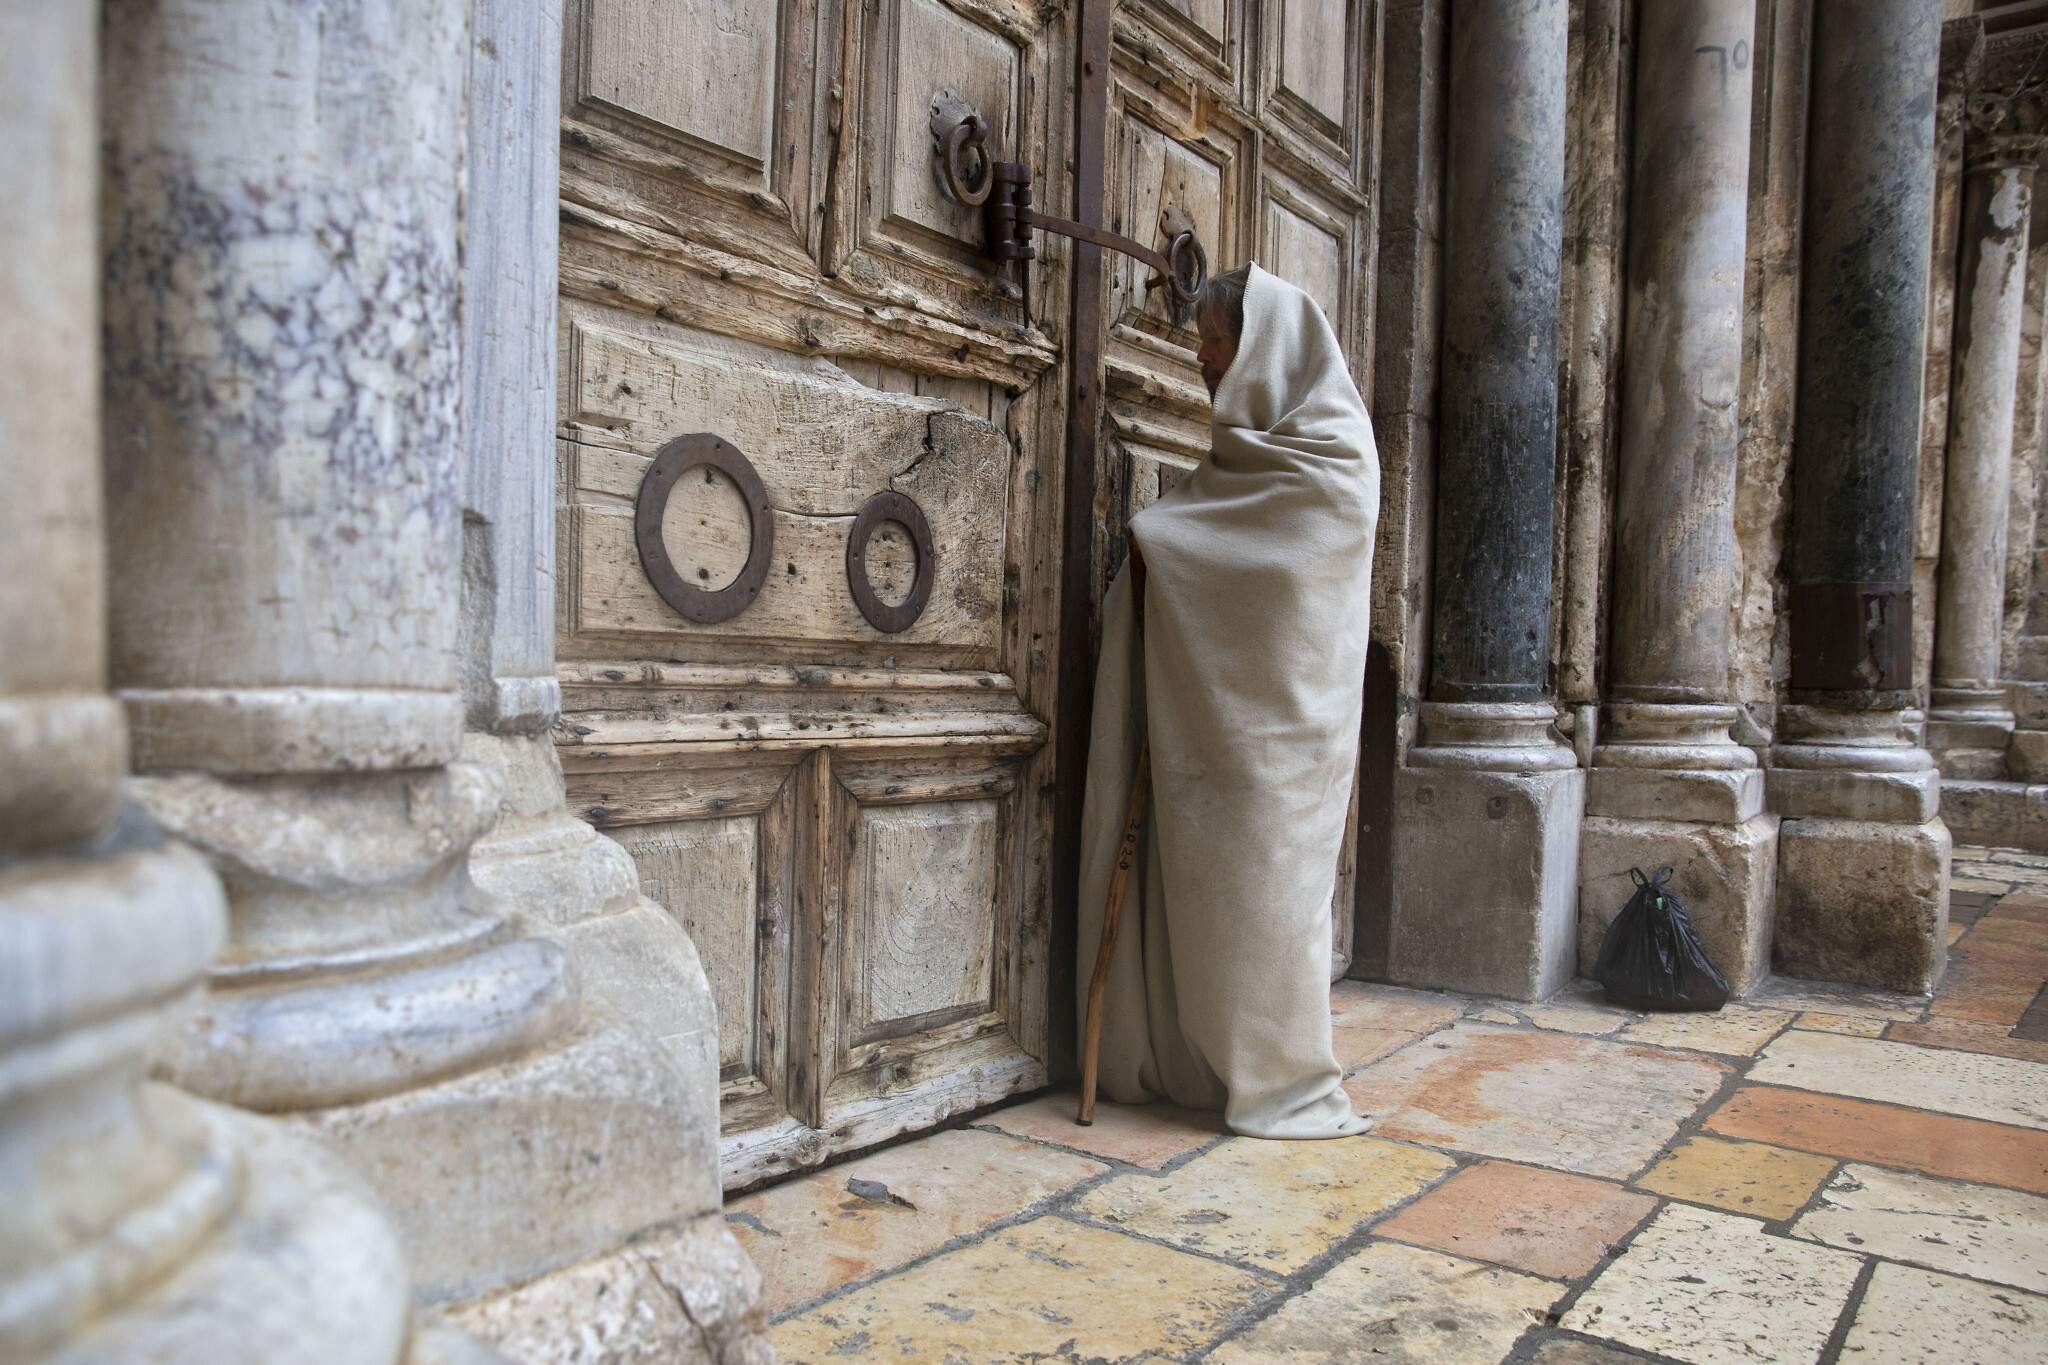 Church Of The Holy Sepulchre To Reopen Sunday For First Time In